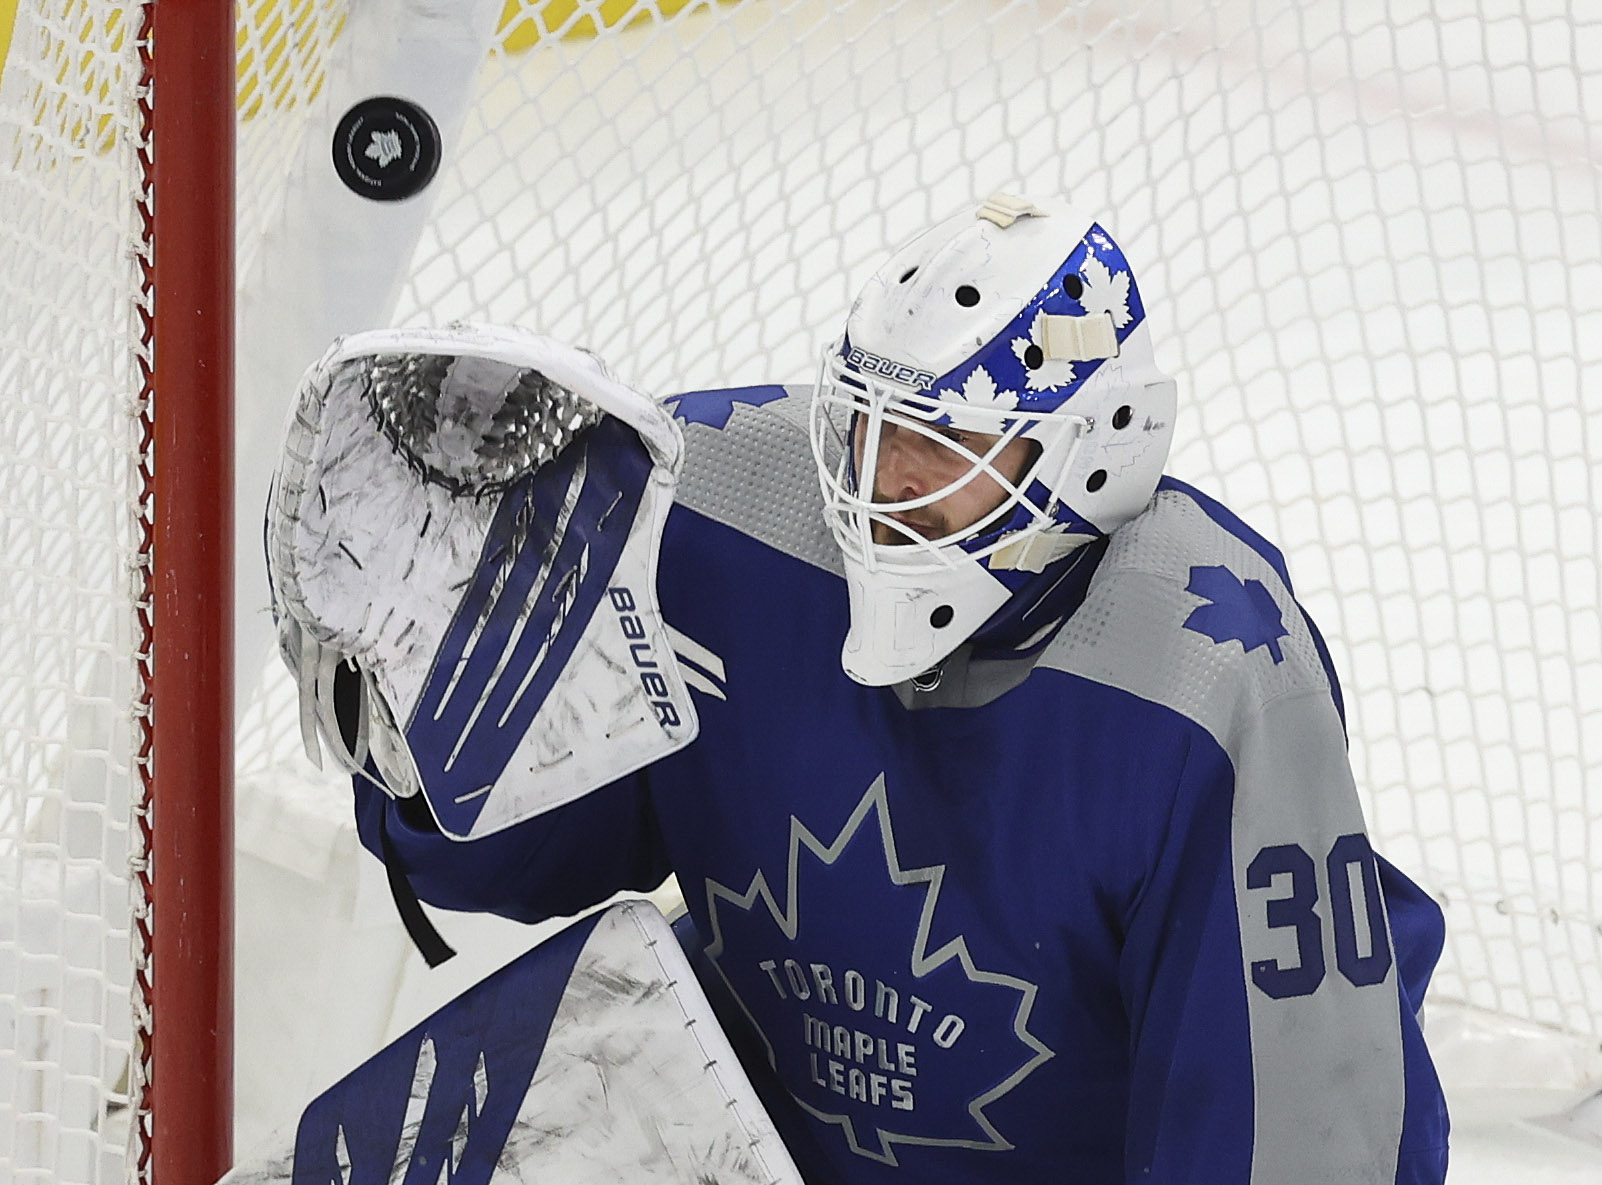 The Toronto Maple Leafs played the Calgary Flames at Scotiabank arena